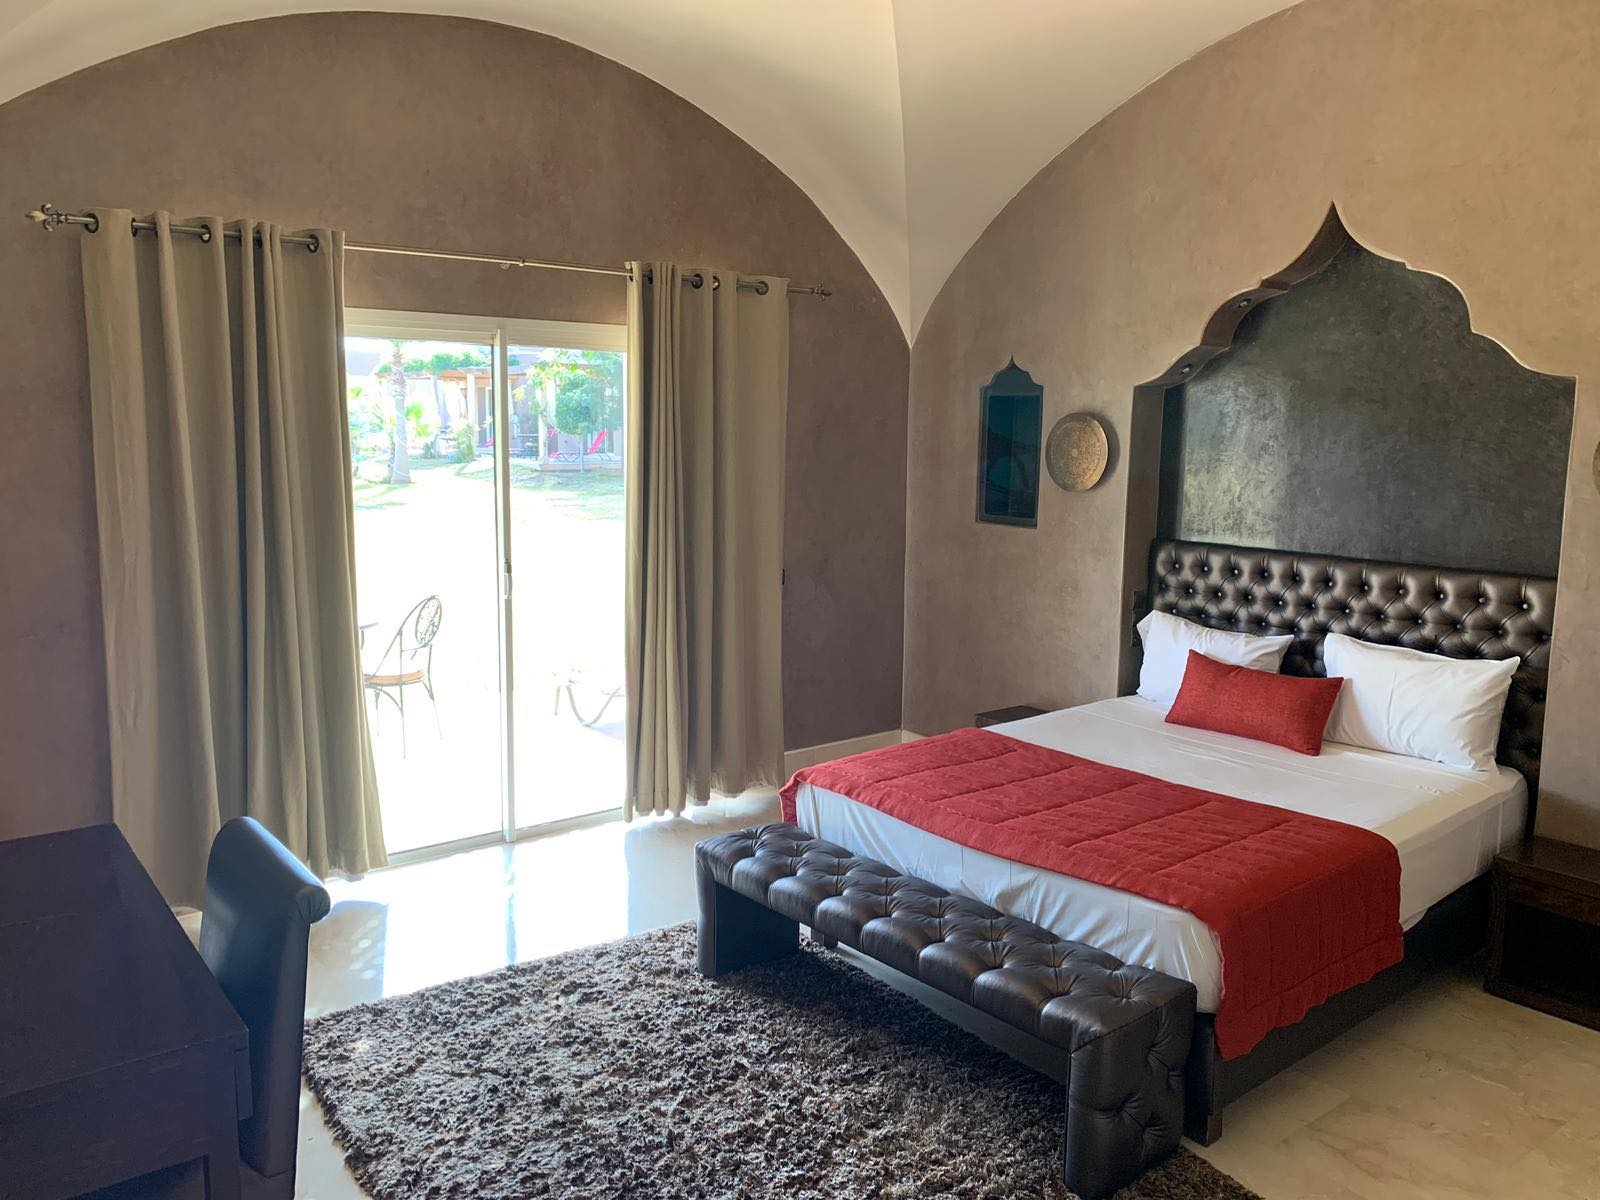 OUR PRIVATE VILLA DOUBLE ROOMS - 6 AVAILABLE - PERFECT FOR A COUPLE OR 2 FRIENDS HAPPY TO SHARE A DOUBLE BED - 6 ROOMS AVAILABLE - £2500 BETWEEN 2 PEOPLE